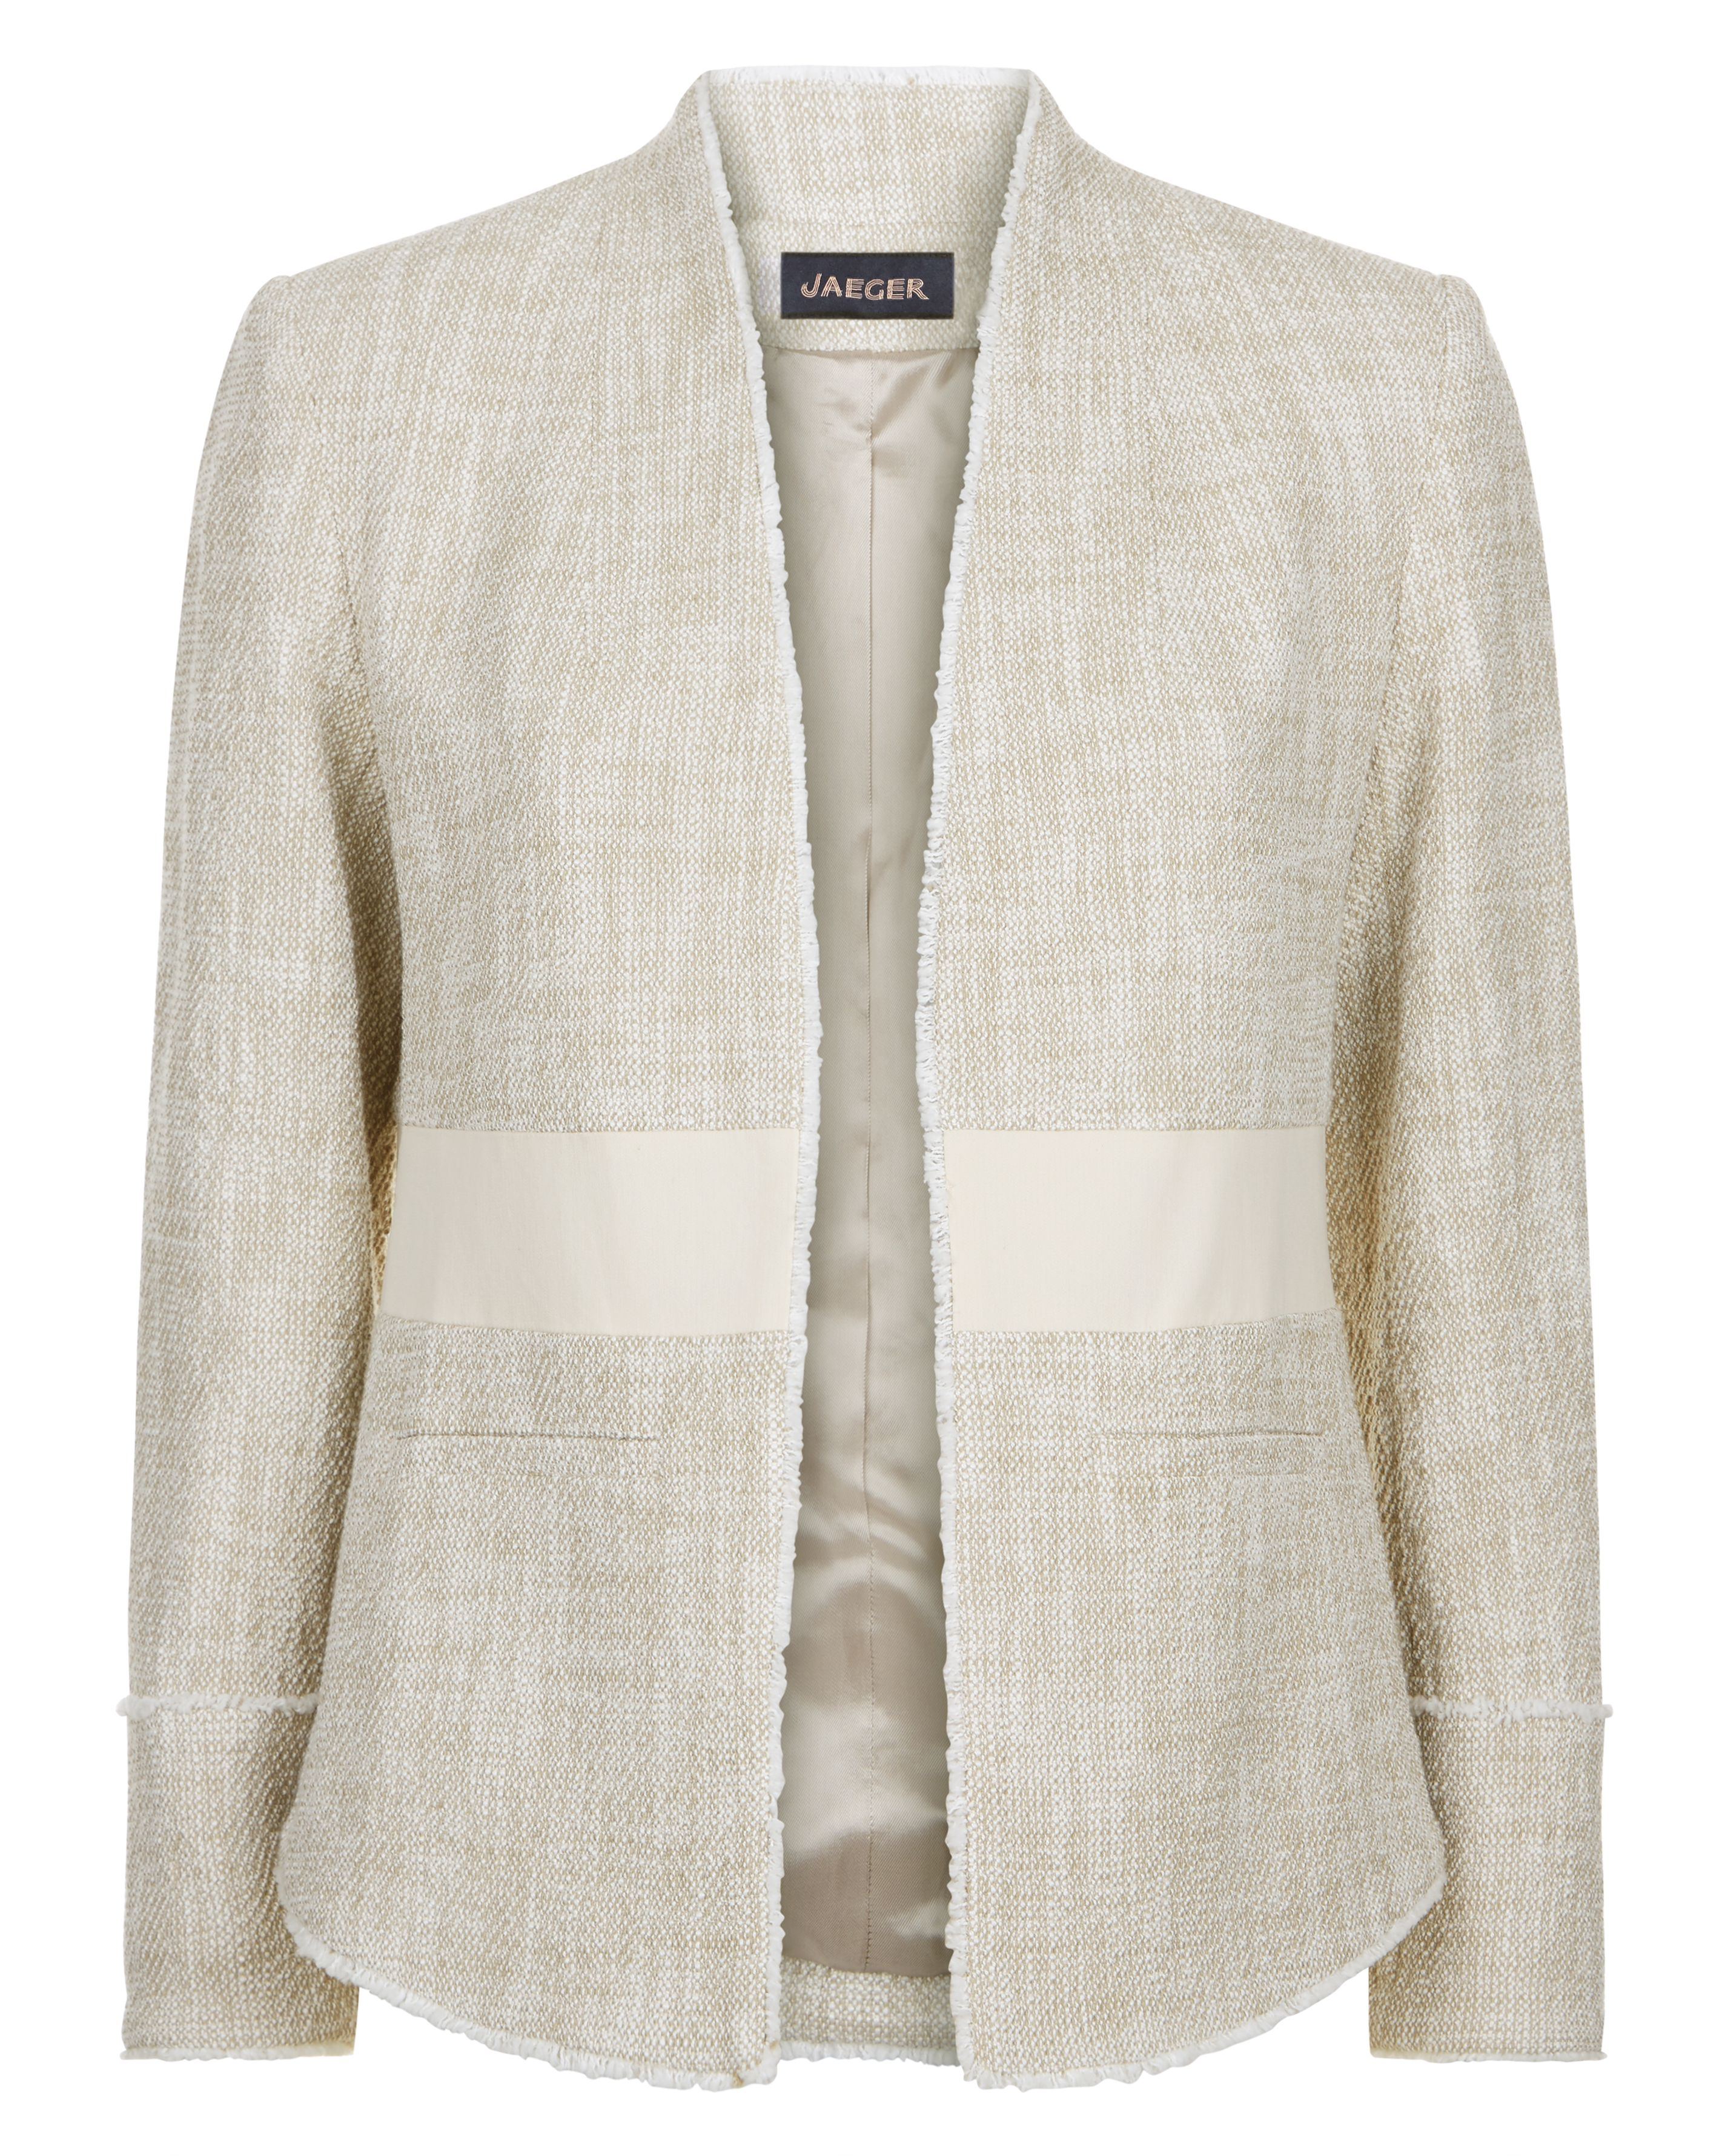 Jaeger Cotton Tweed Tailored Jacket, Neutral